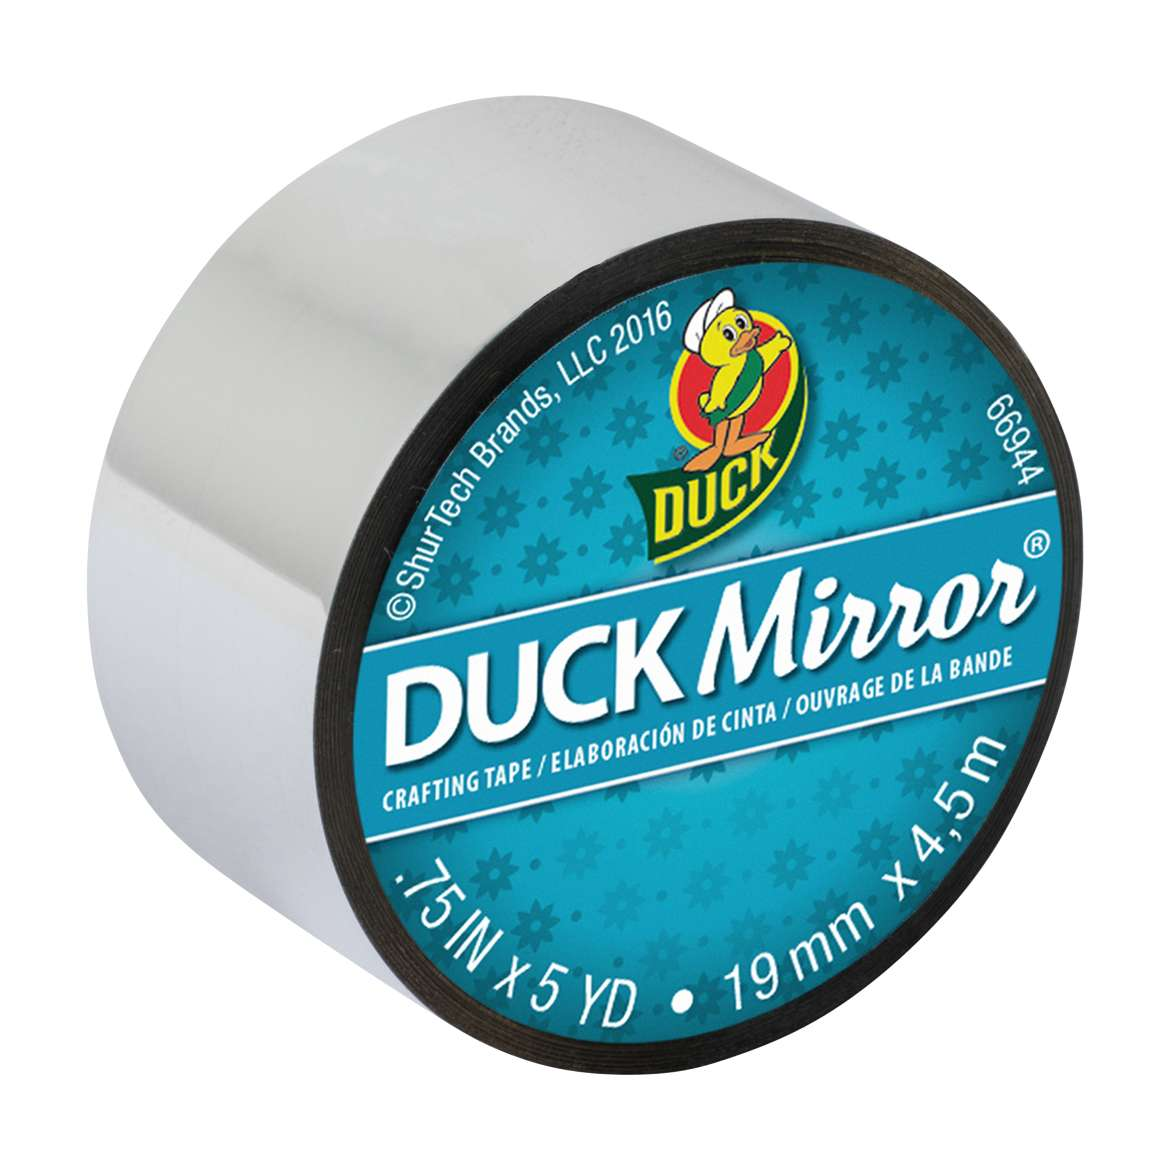 Duck Mirror® Crafting Tape - Silver, 0.75 in. x 5 yd. Image